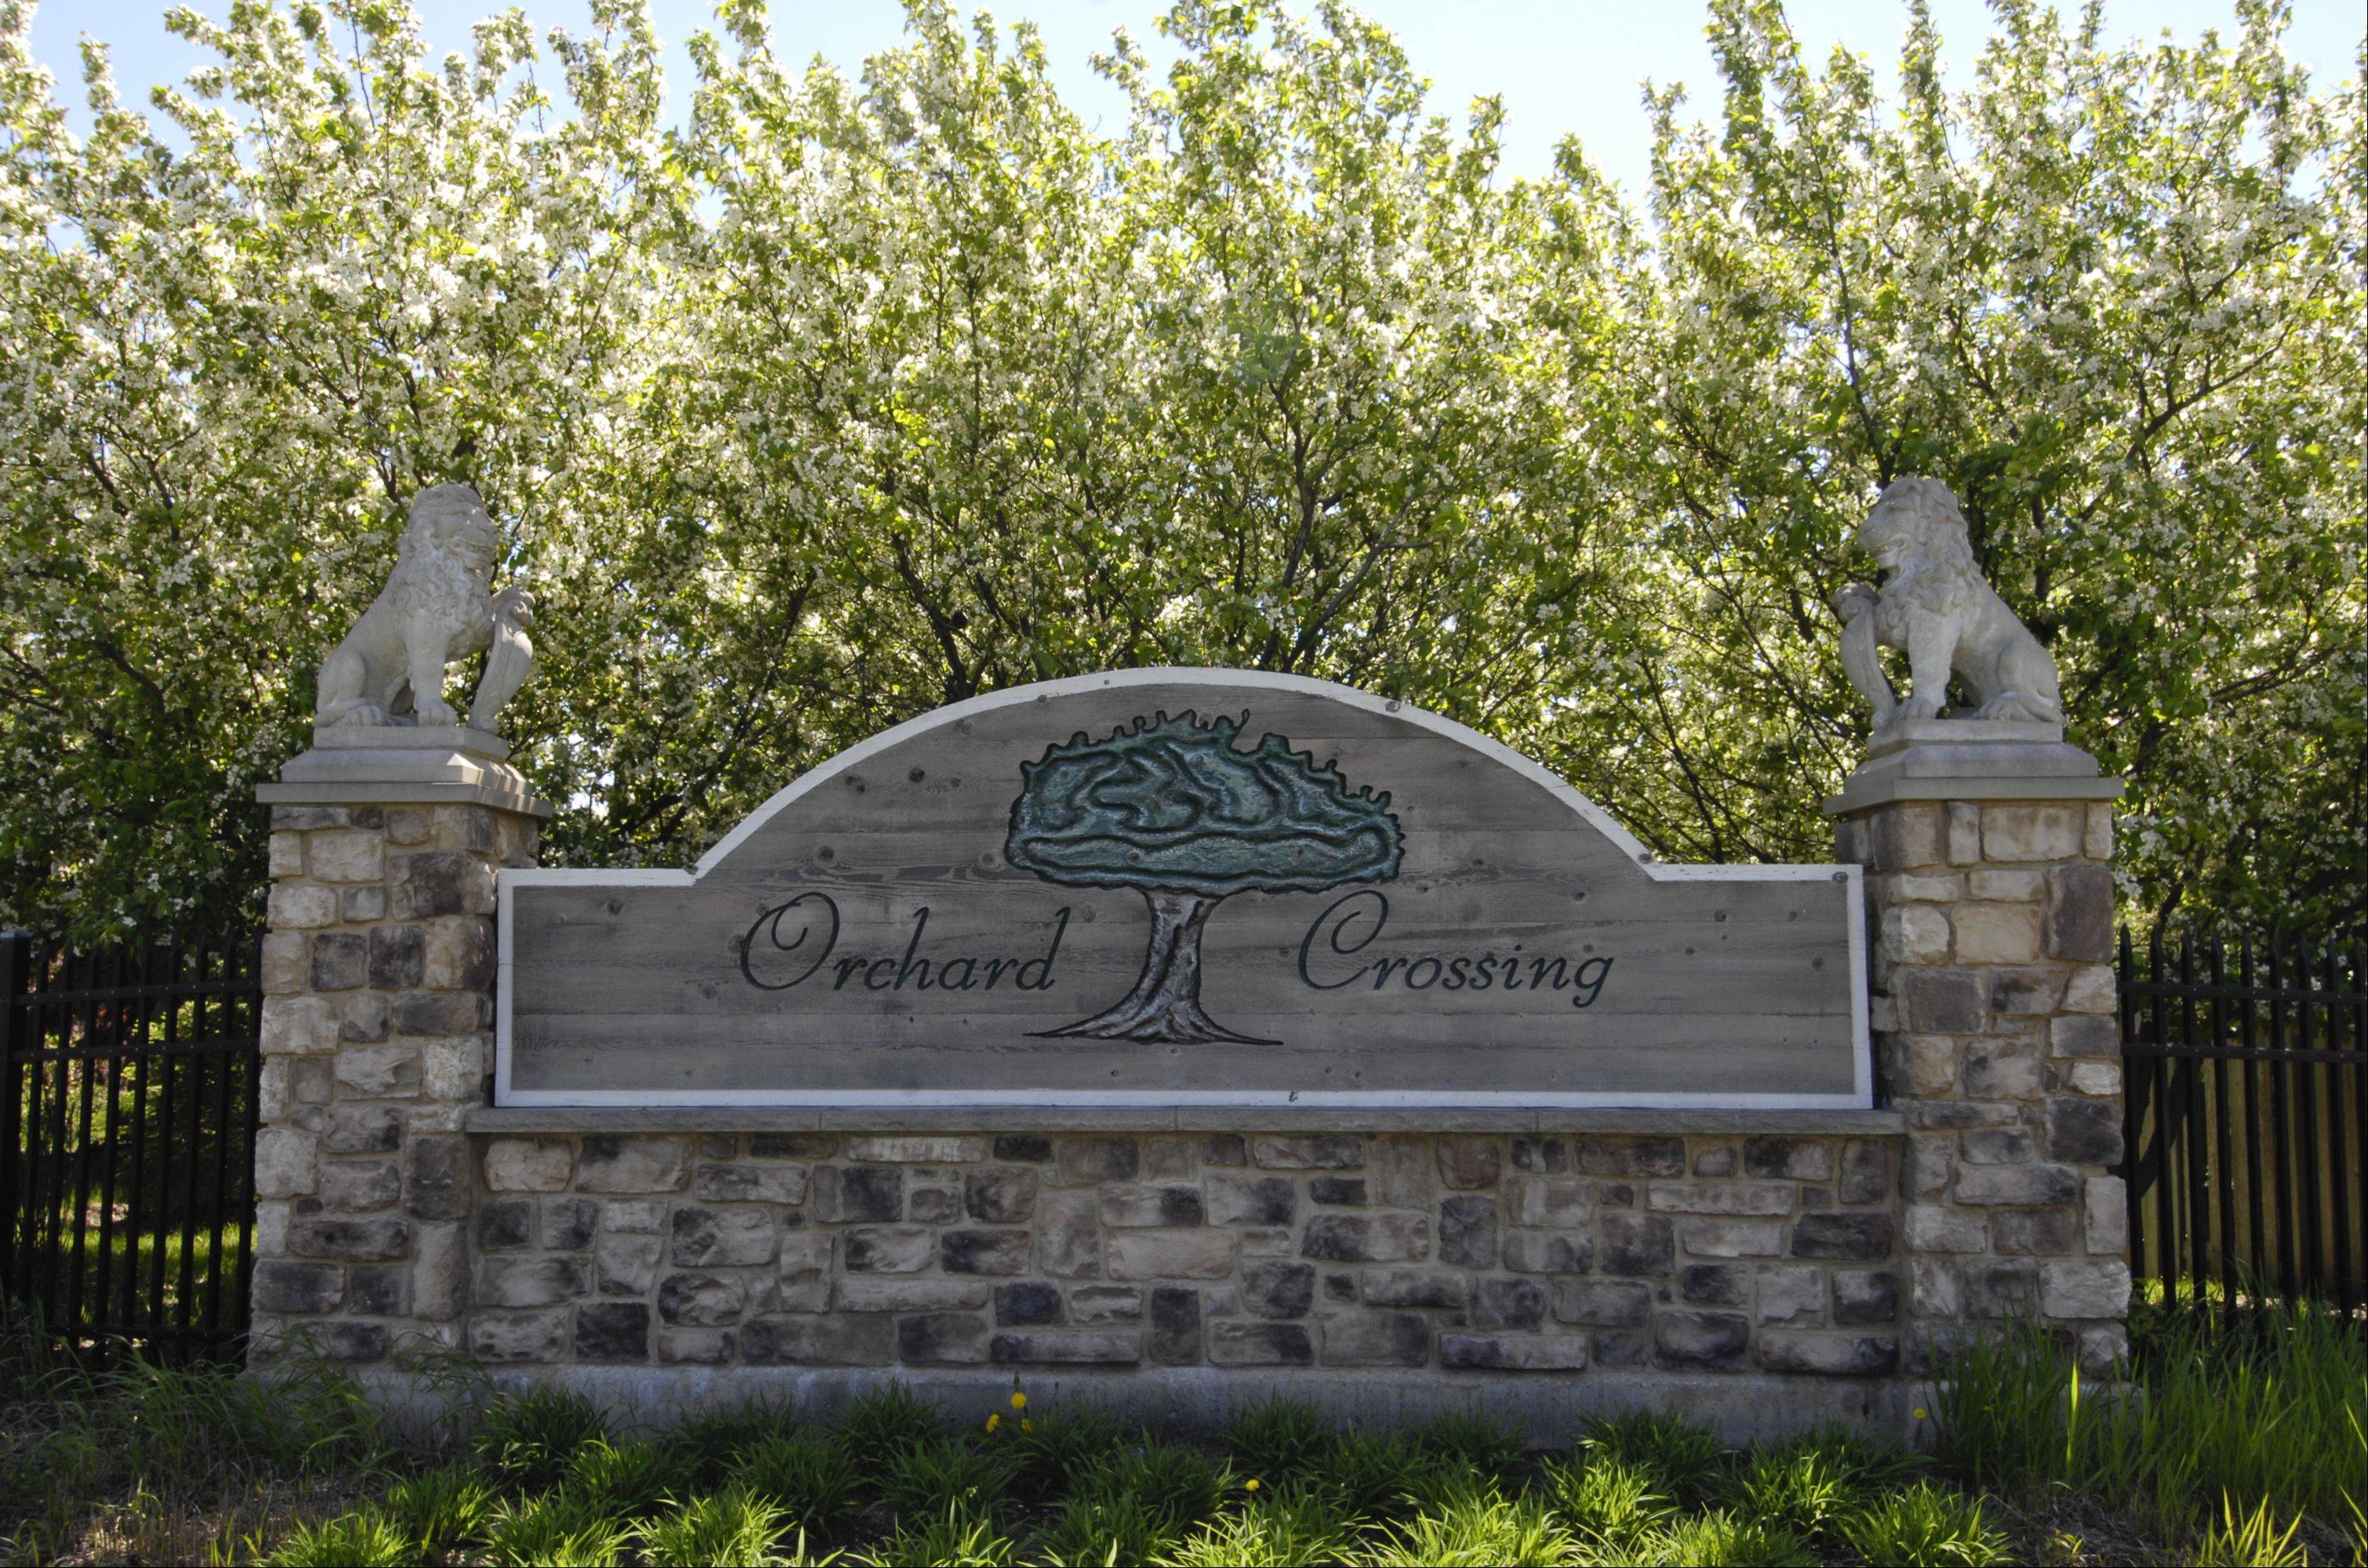 Many of the houses in Orchard Crossing were built in the late 1990s, a period of rapid growth in North Aurora.